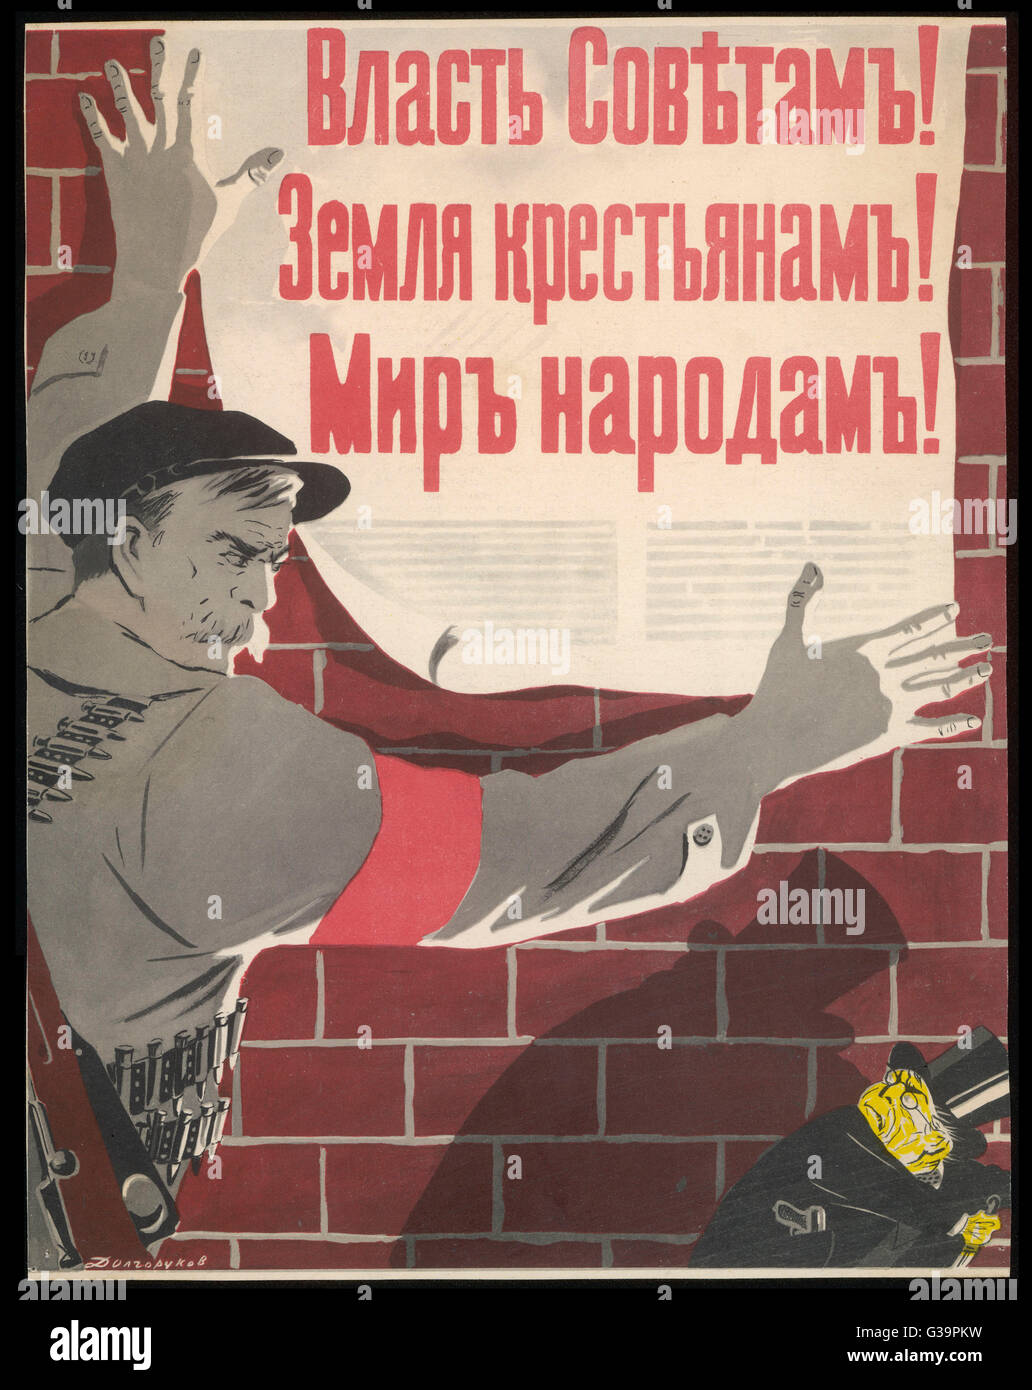 Revolutionary poster depicting  the bourgeois as the enemy of  the revolution        Date: ?1917 - Stock Image